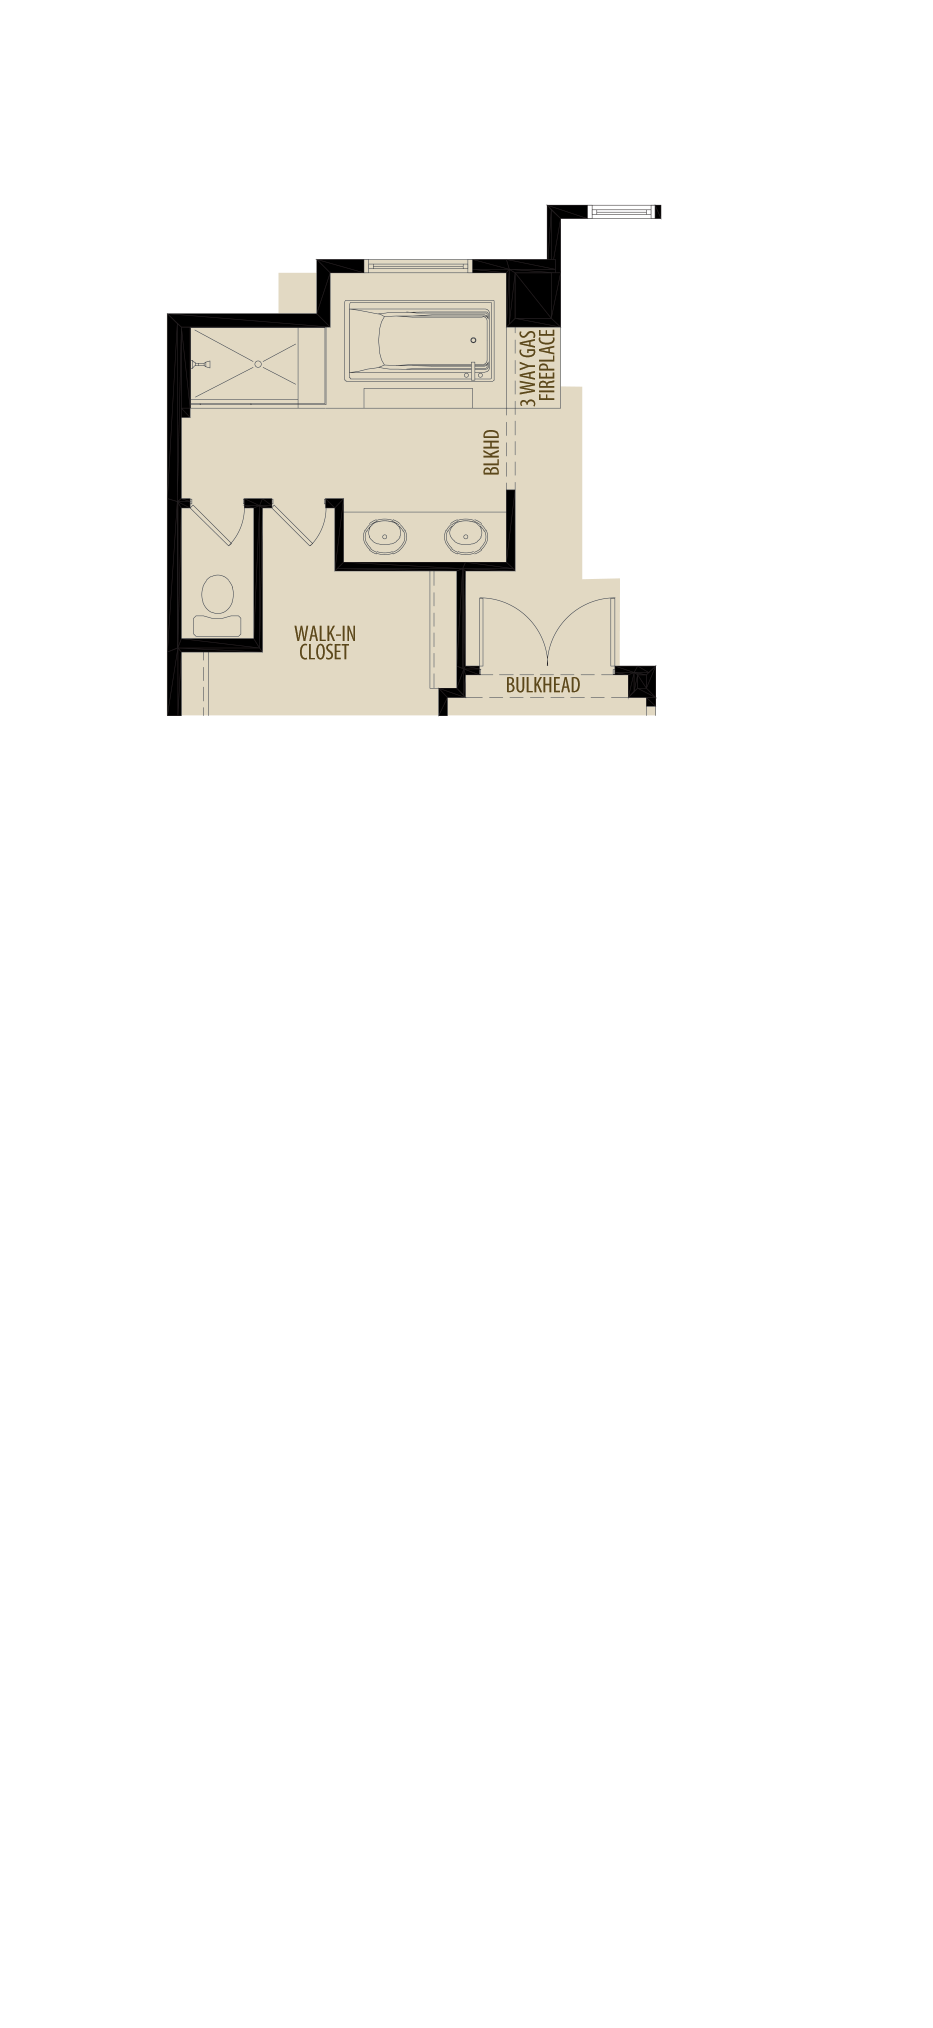 Revised Ensuite Layout Adds 8Sq Ft